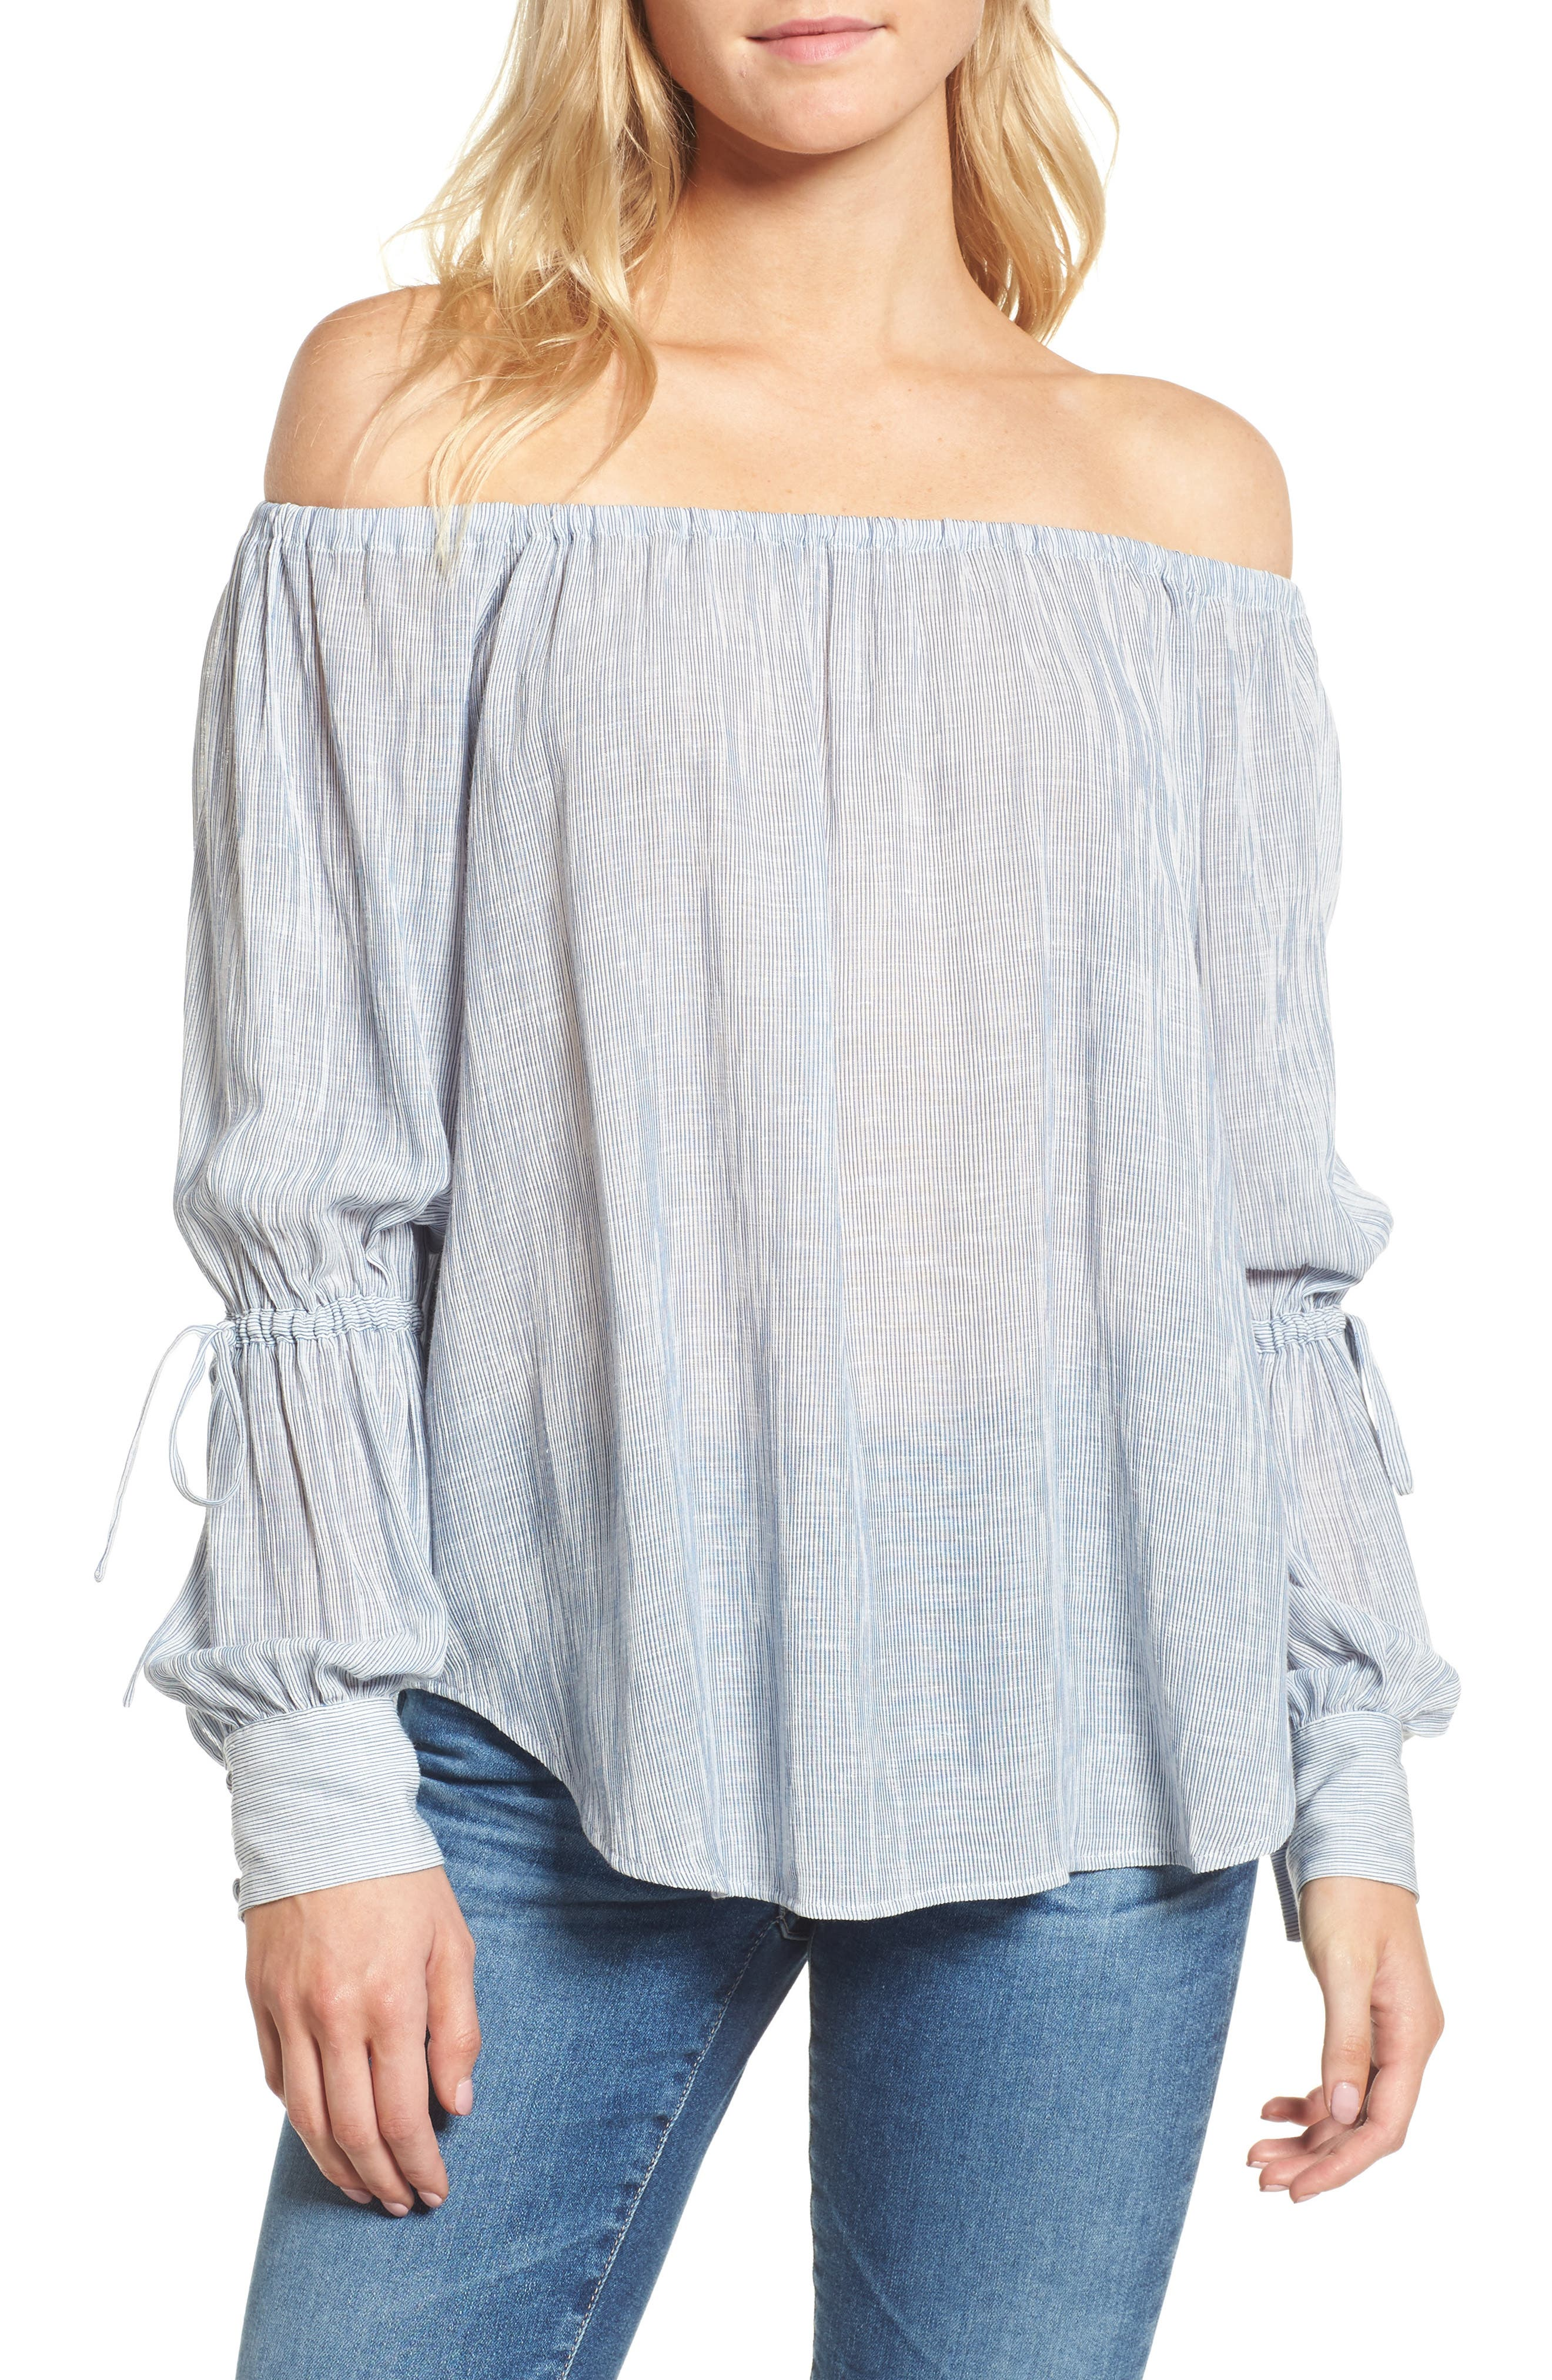 Tallulah Off the Shoulder Blouse,                         Main,                         color, Navy/ White